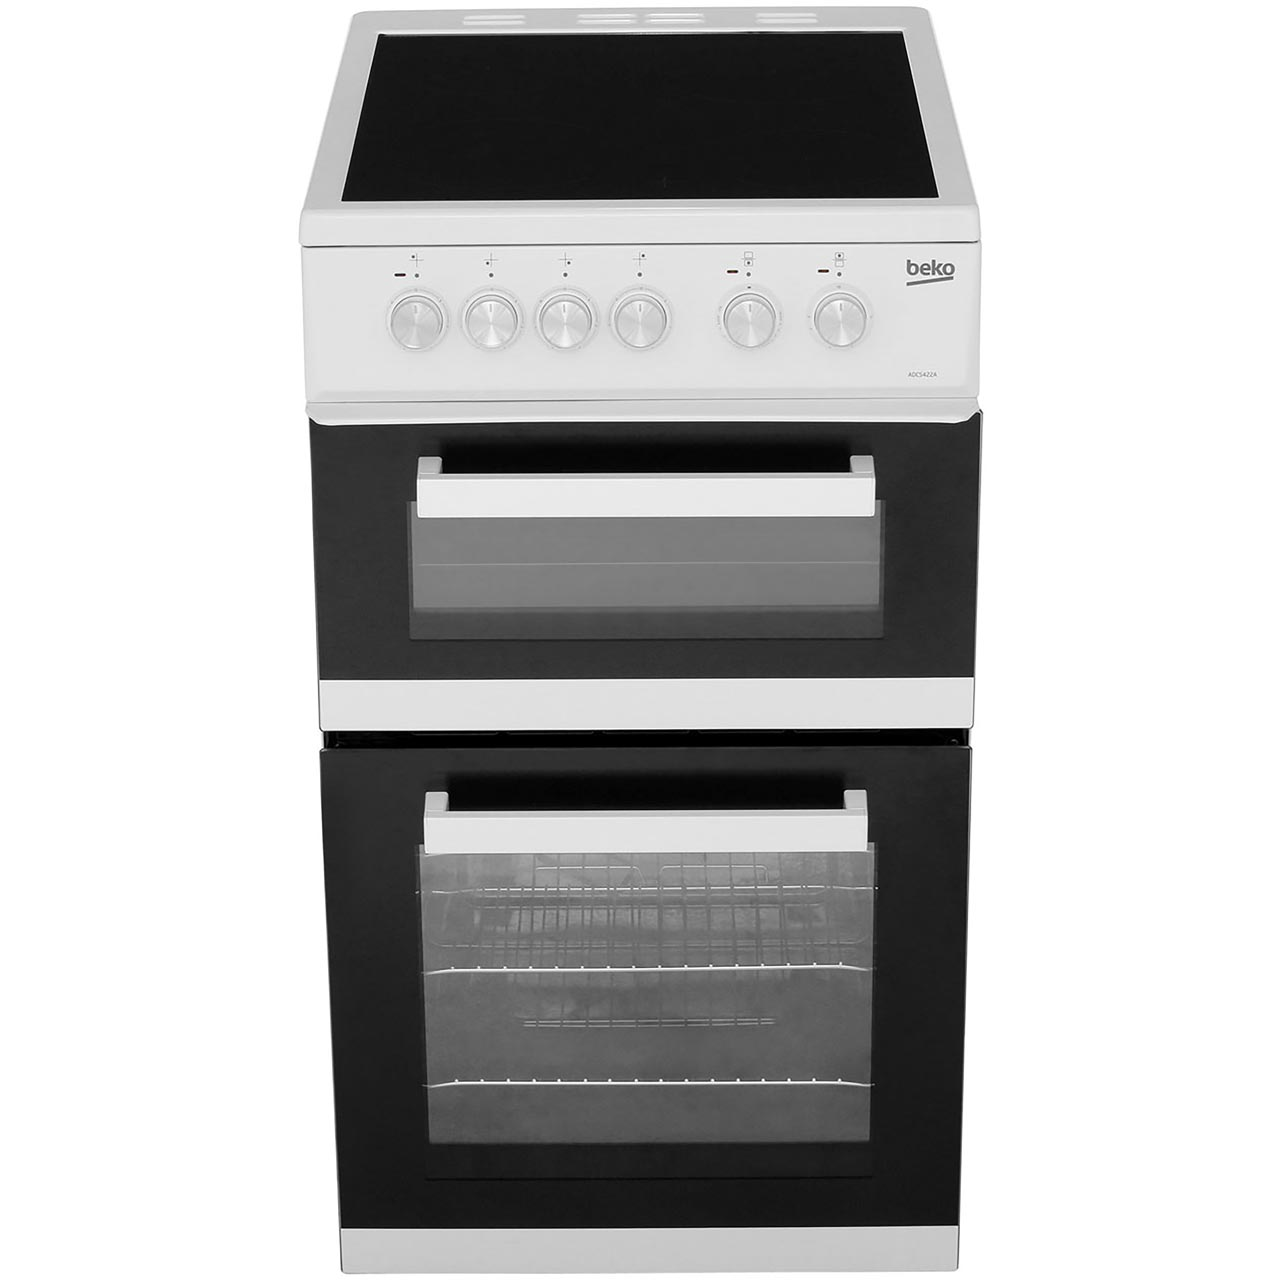 Adc5422aw Wh Beko Electric Cooker Rapidlite Zones Wiring Oven And Gas Hob